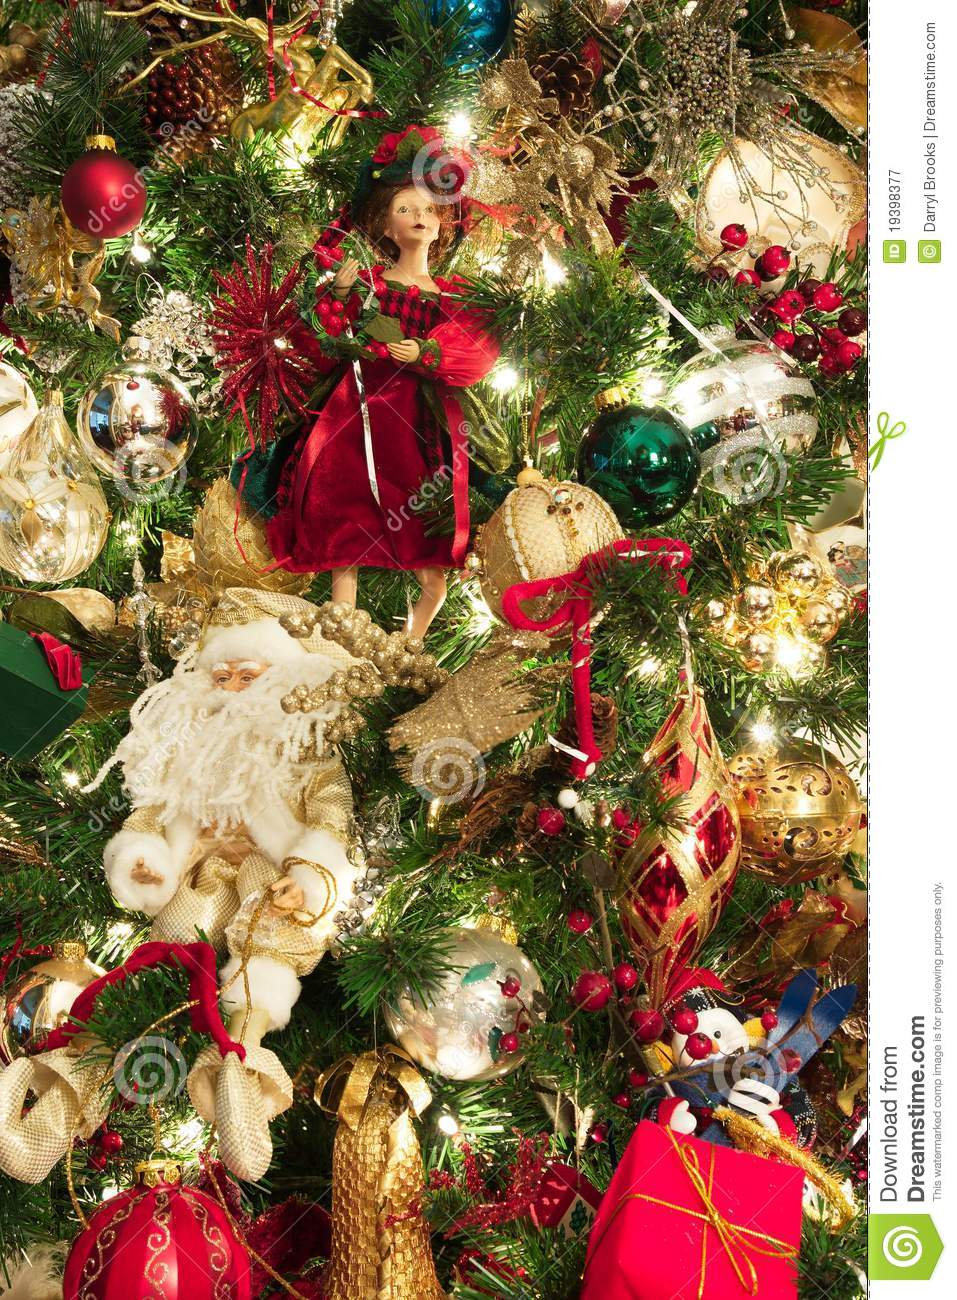 Christmas Tree Decorated With Santas And Dolls Royalty